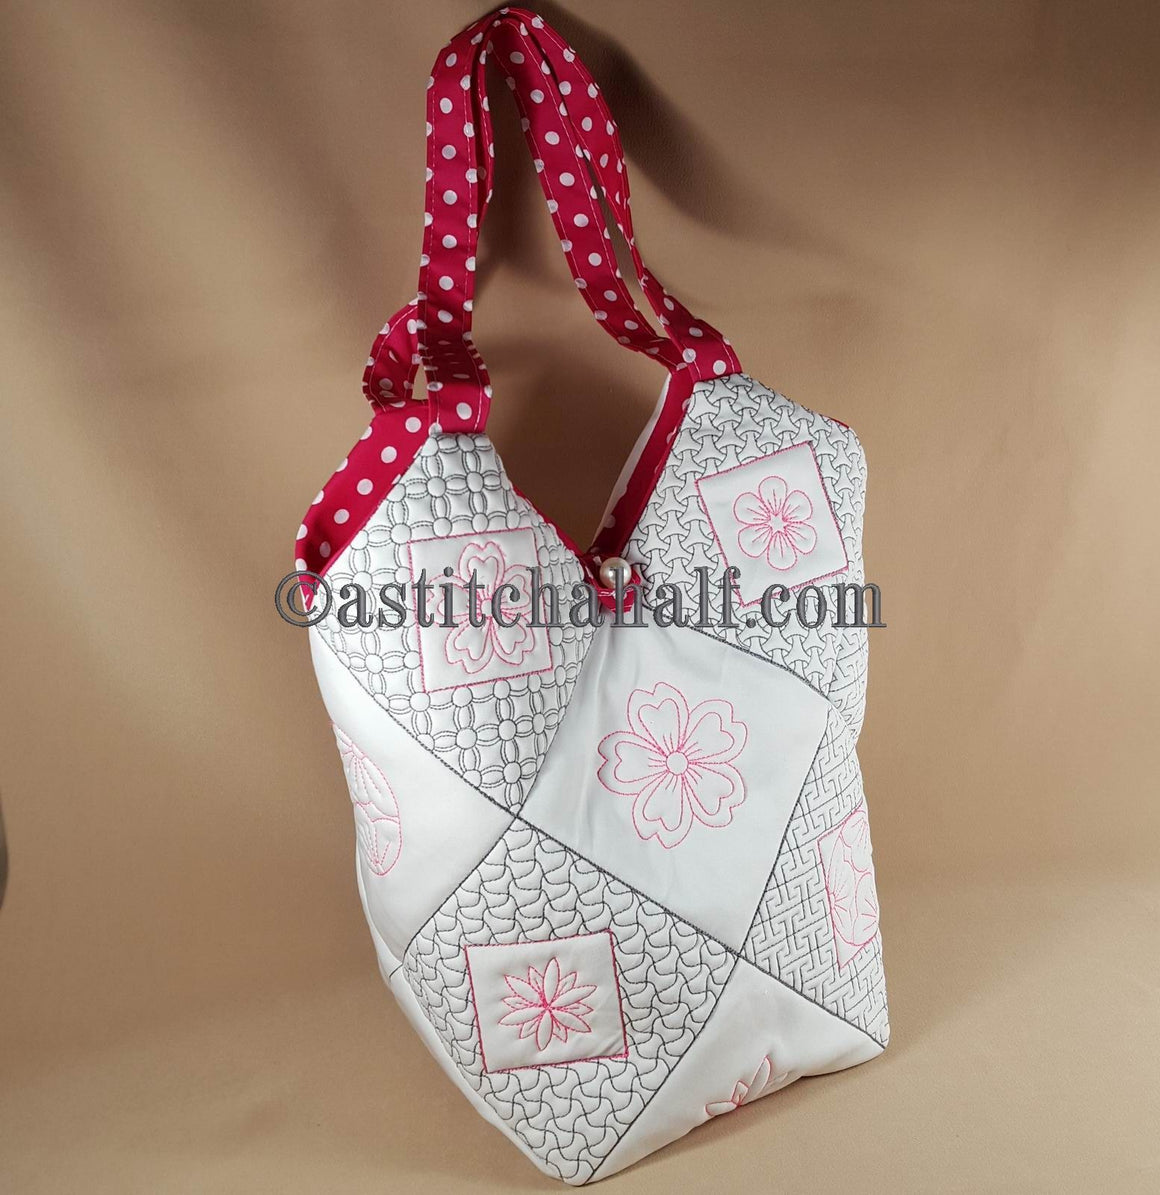 Sakura Smart Tote and Quilt Blocks